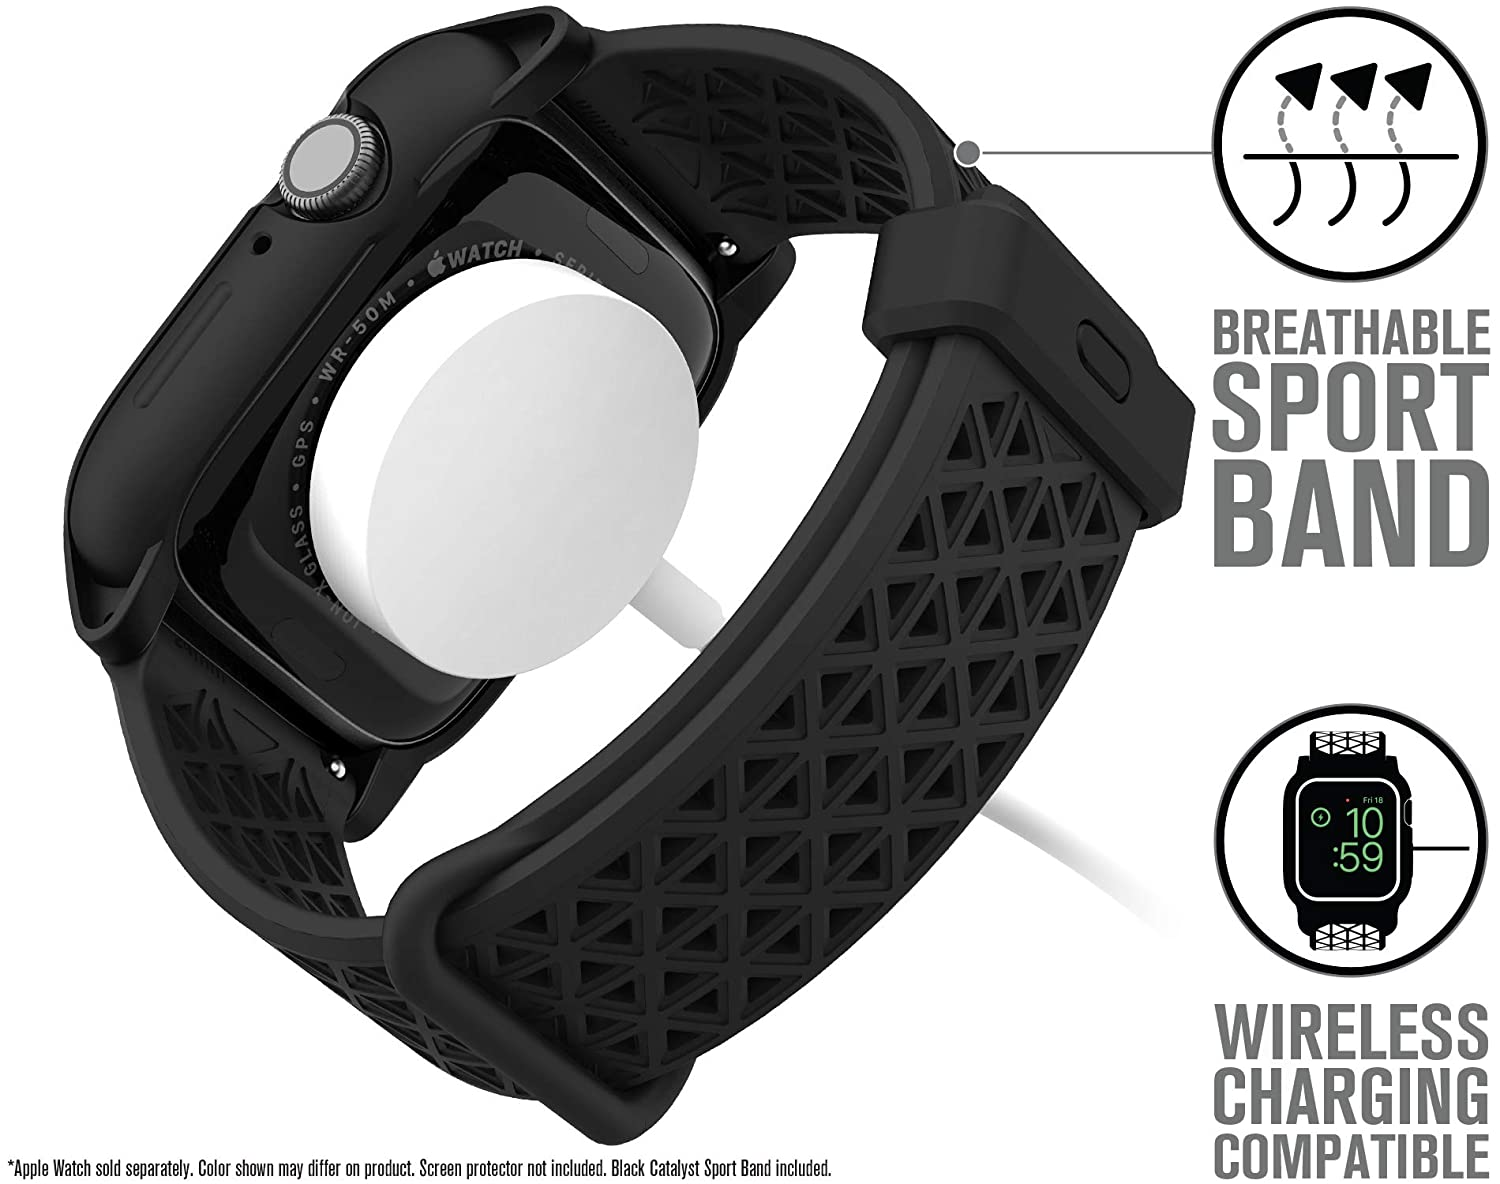 Catalyst Case for Apple Watch Series 5 and Series 4 44mm, Drop Proof 9.9ft, ECG and EKG Compatible, Superior Sport Band, Breathable, Rugged, Shock ...